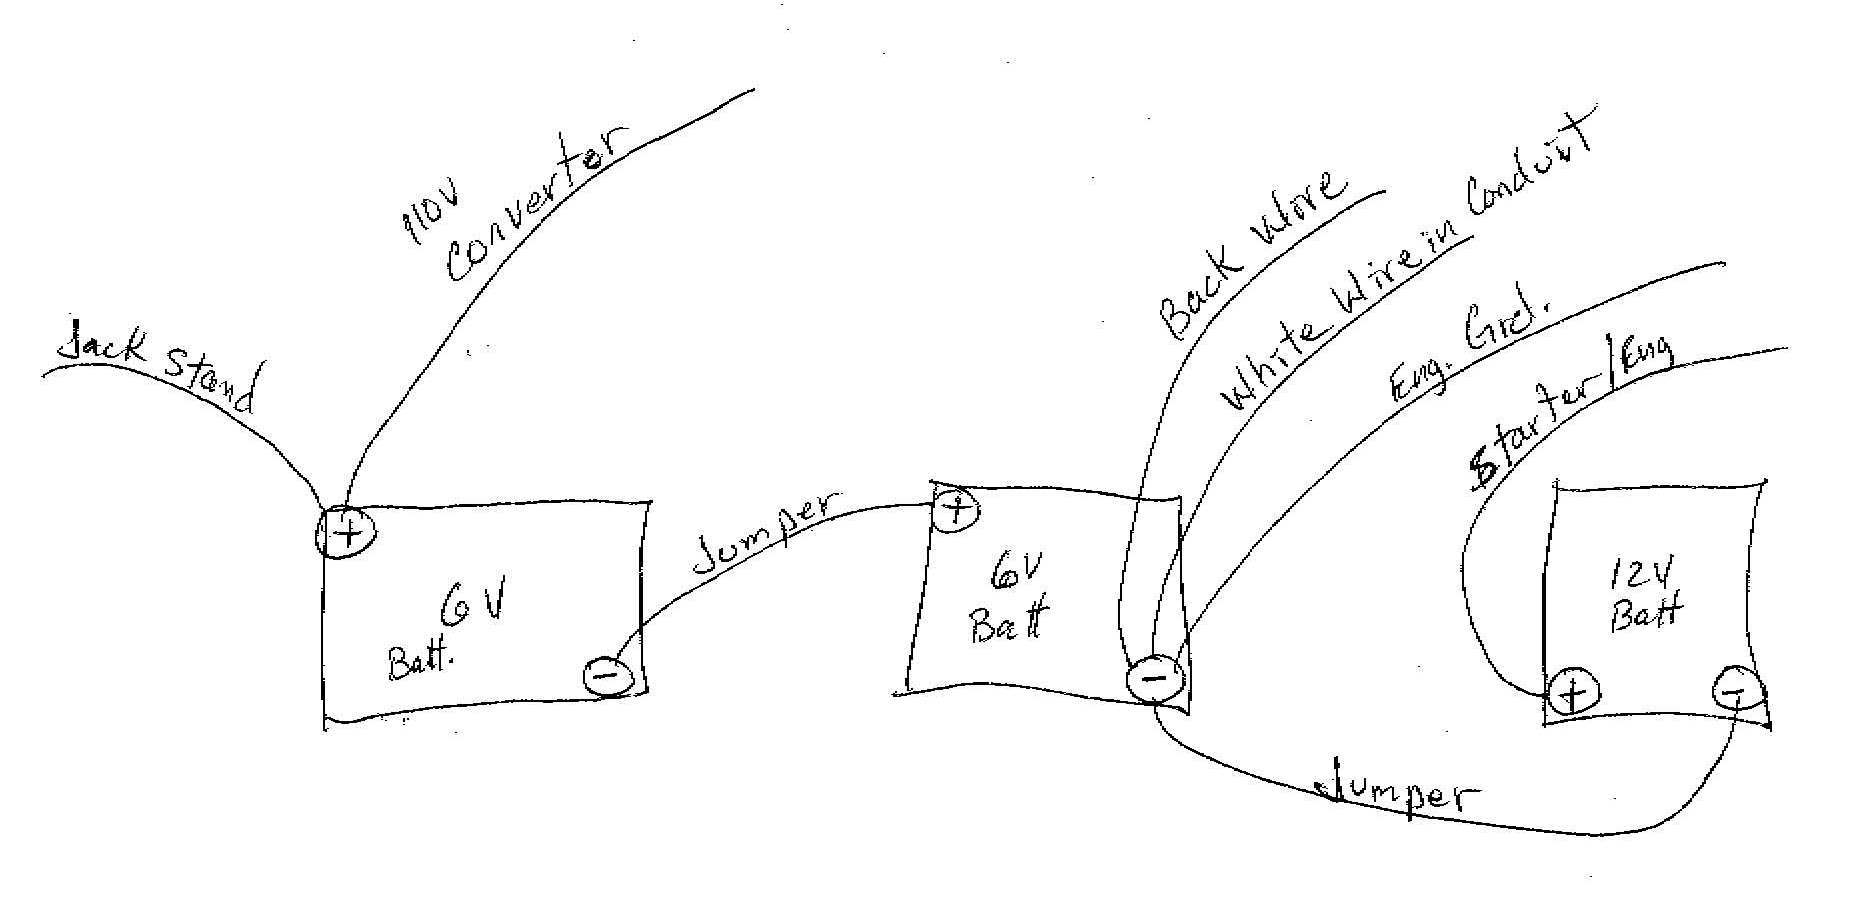 W T96969 start 30 likewise Serpentine Belt Diagram Ford F 250 Html further 2000 2005ClubCarGasElectric also Cummins system diagrams together with Index. on wiring diagram for motorhome